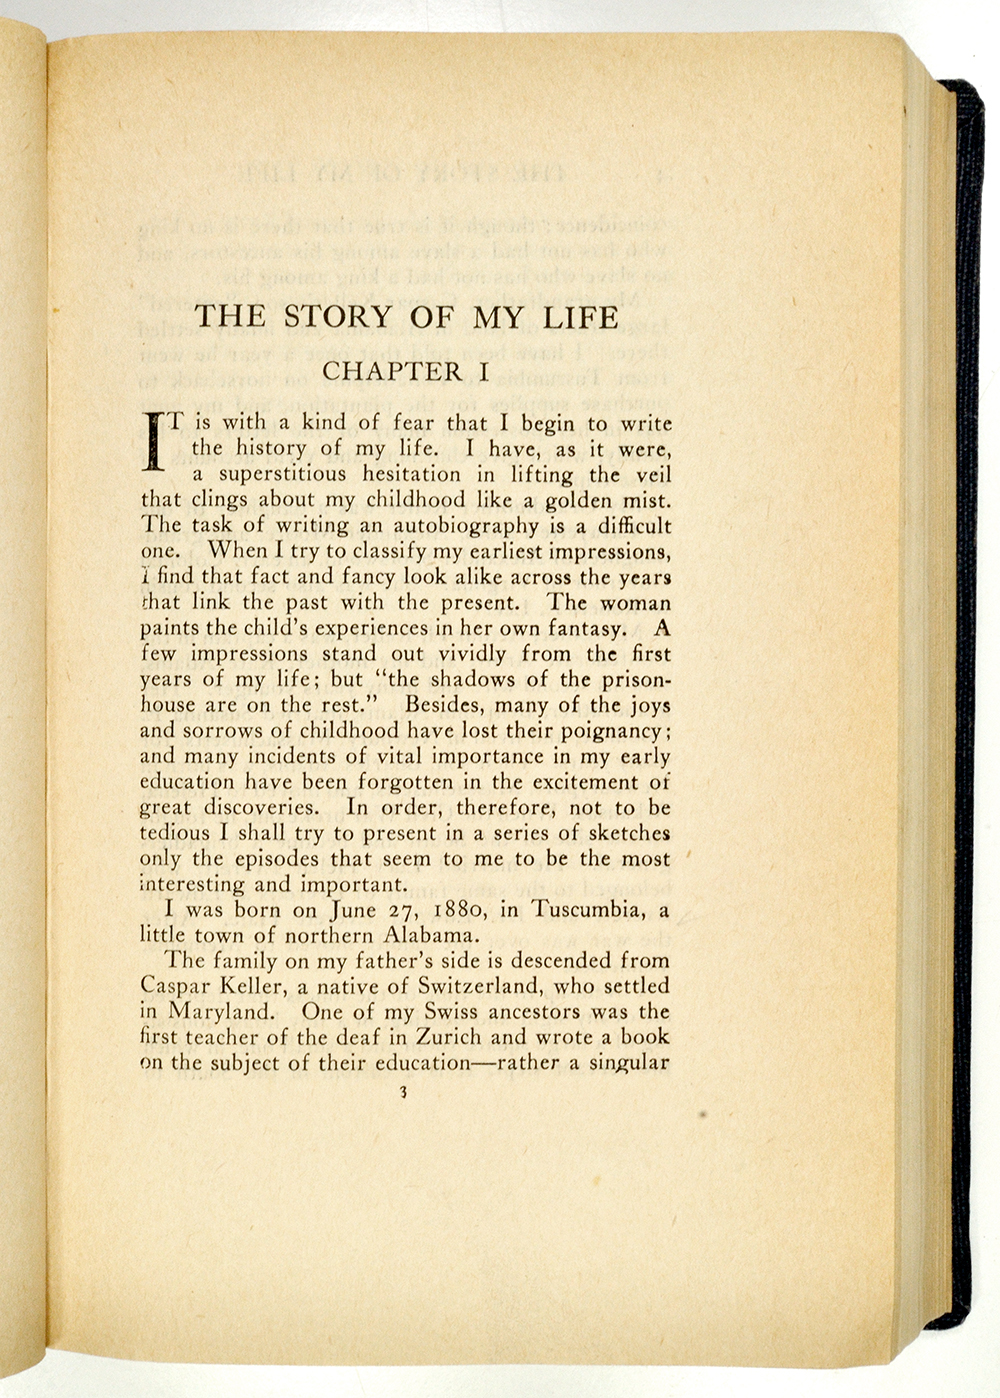 helen keller essays Helen keller essay activity 4 for my personal choice book i have chosen helen keller: the story of my life i chose this book because it was very interesting to read about how her education developed throughout her life.